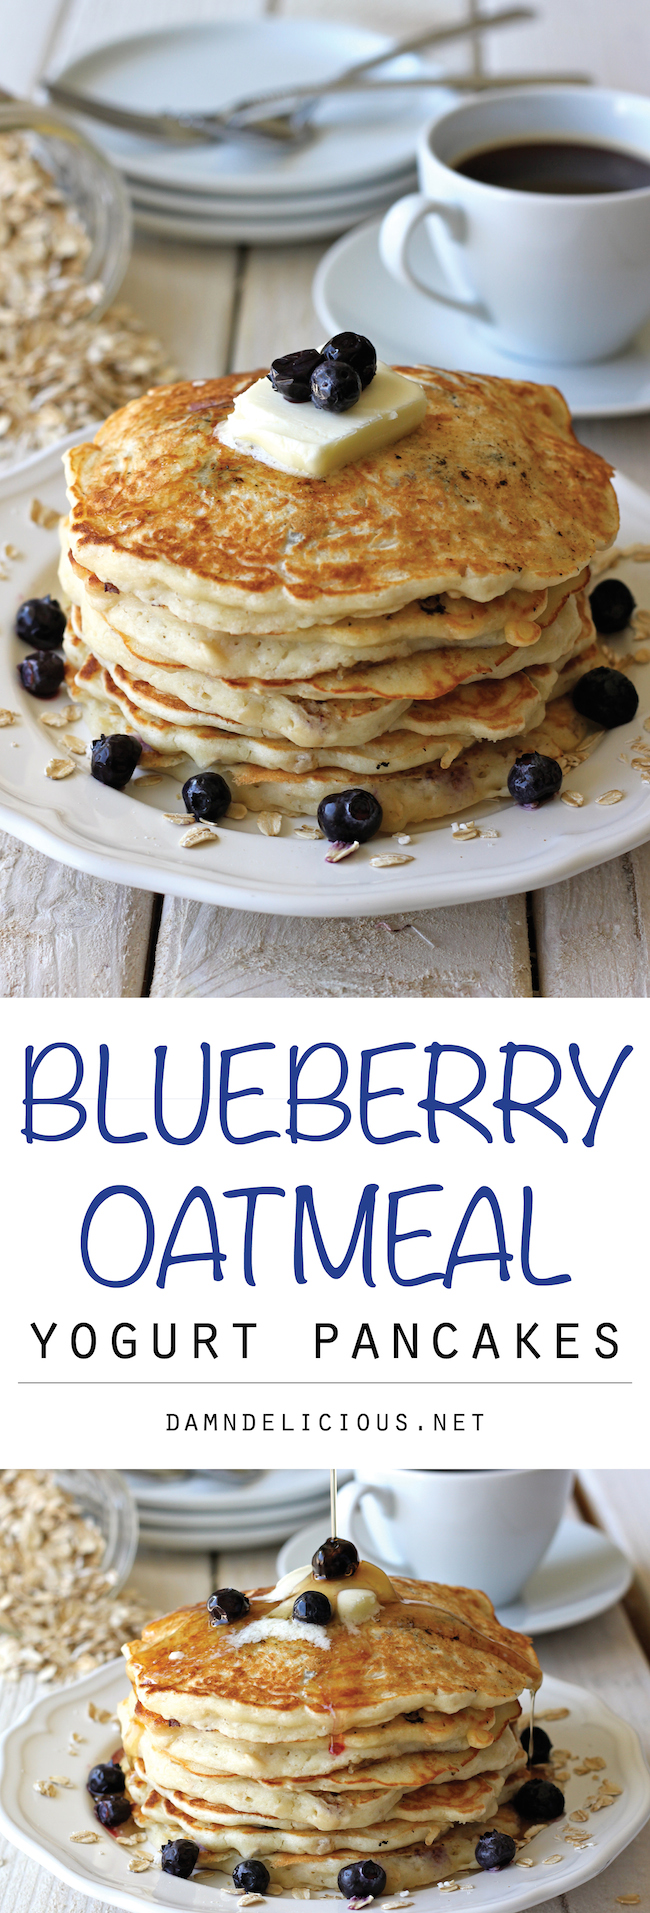 Blueberry Oatmeal Yogurt Pancakes - Start your mornings off right with ...